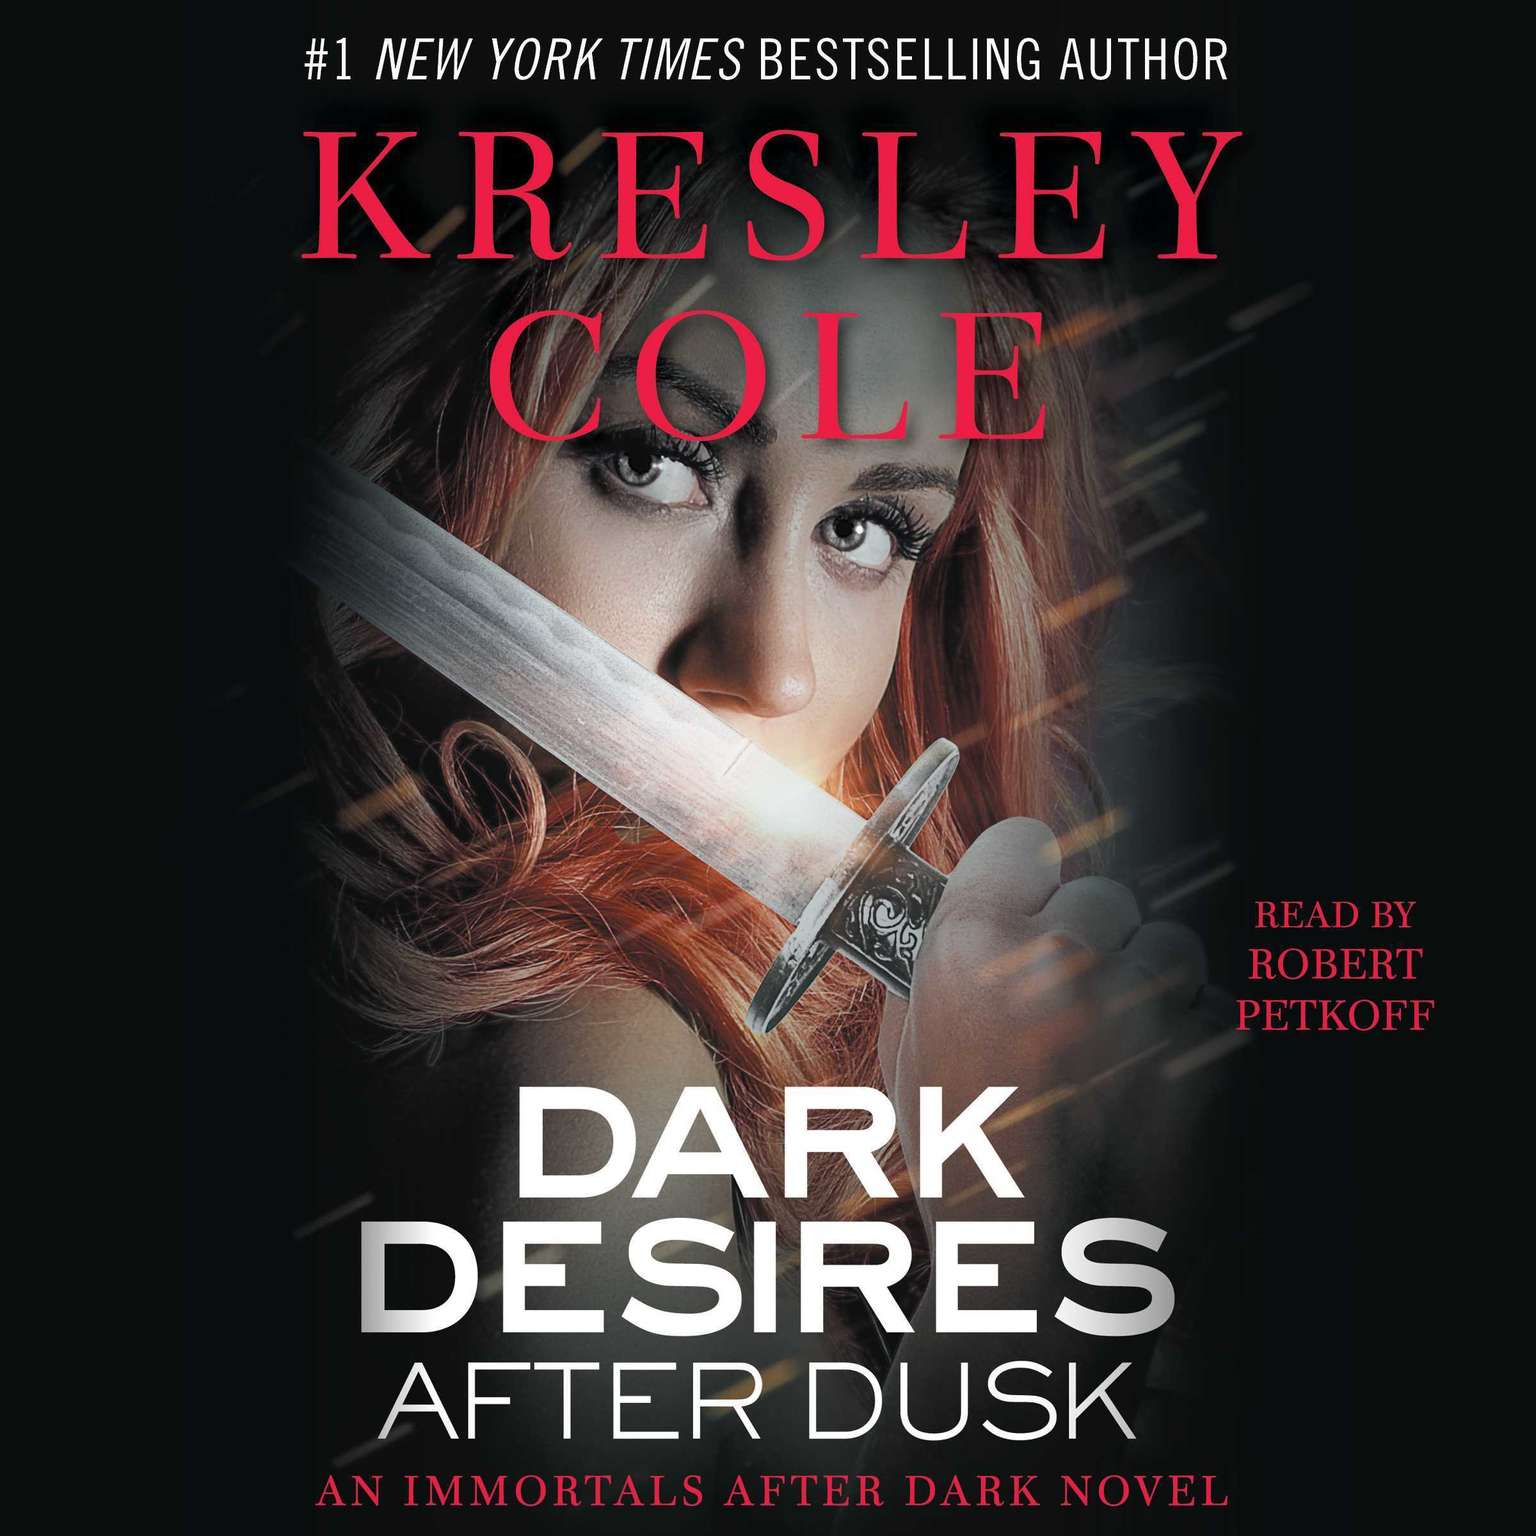 Printable Dark Desires after Dusk Audiobook Cover Art